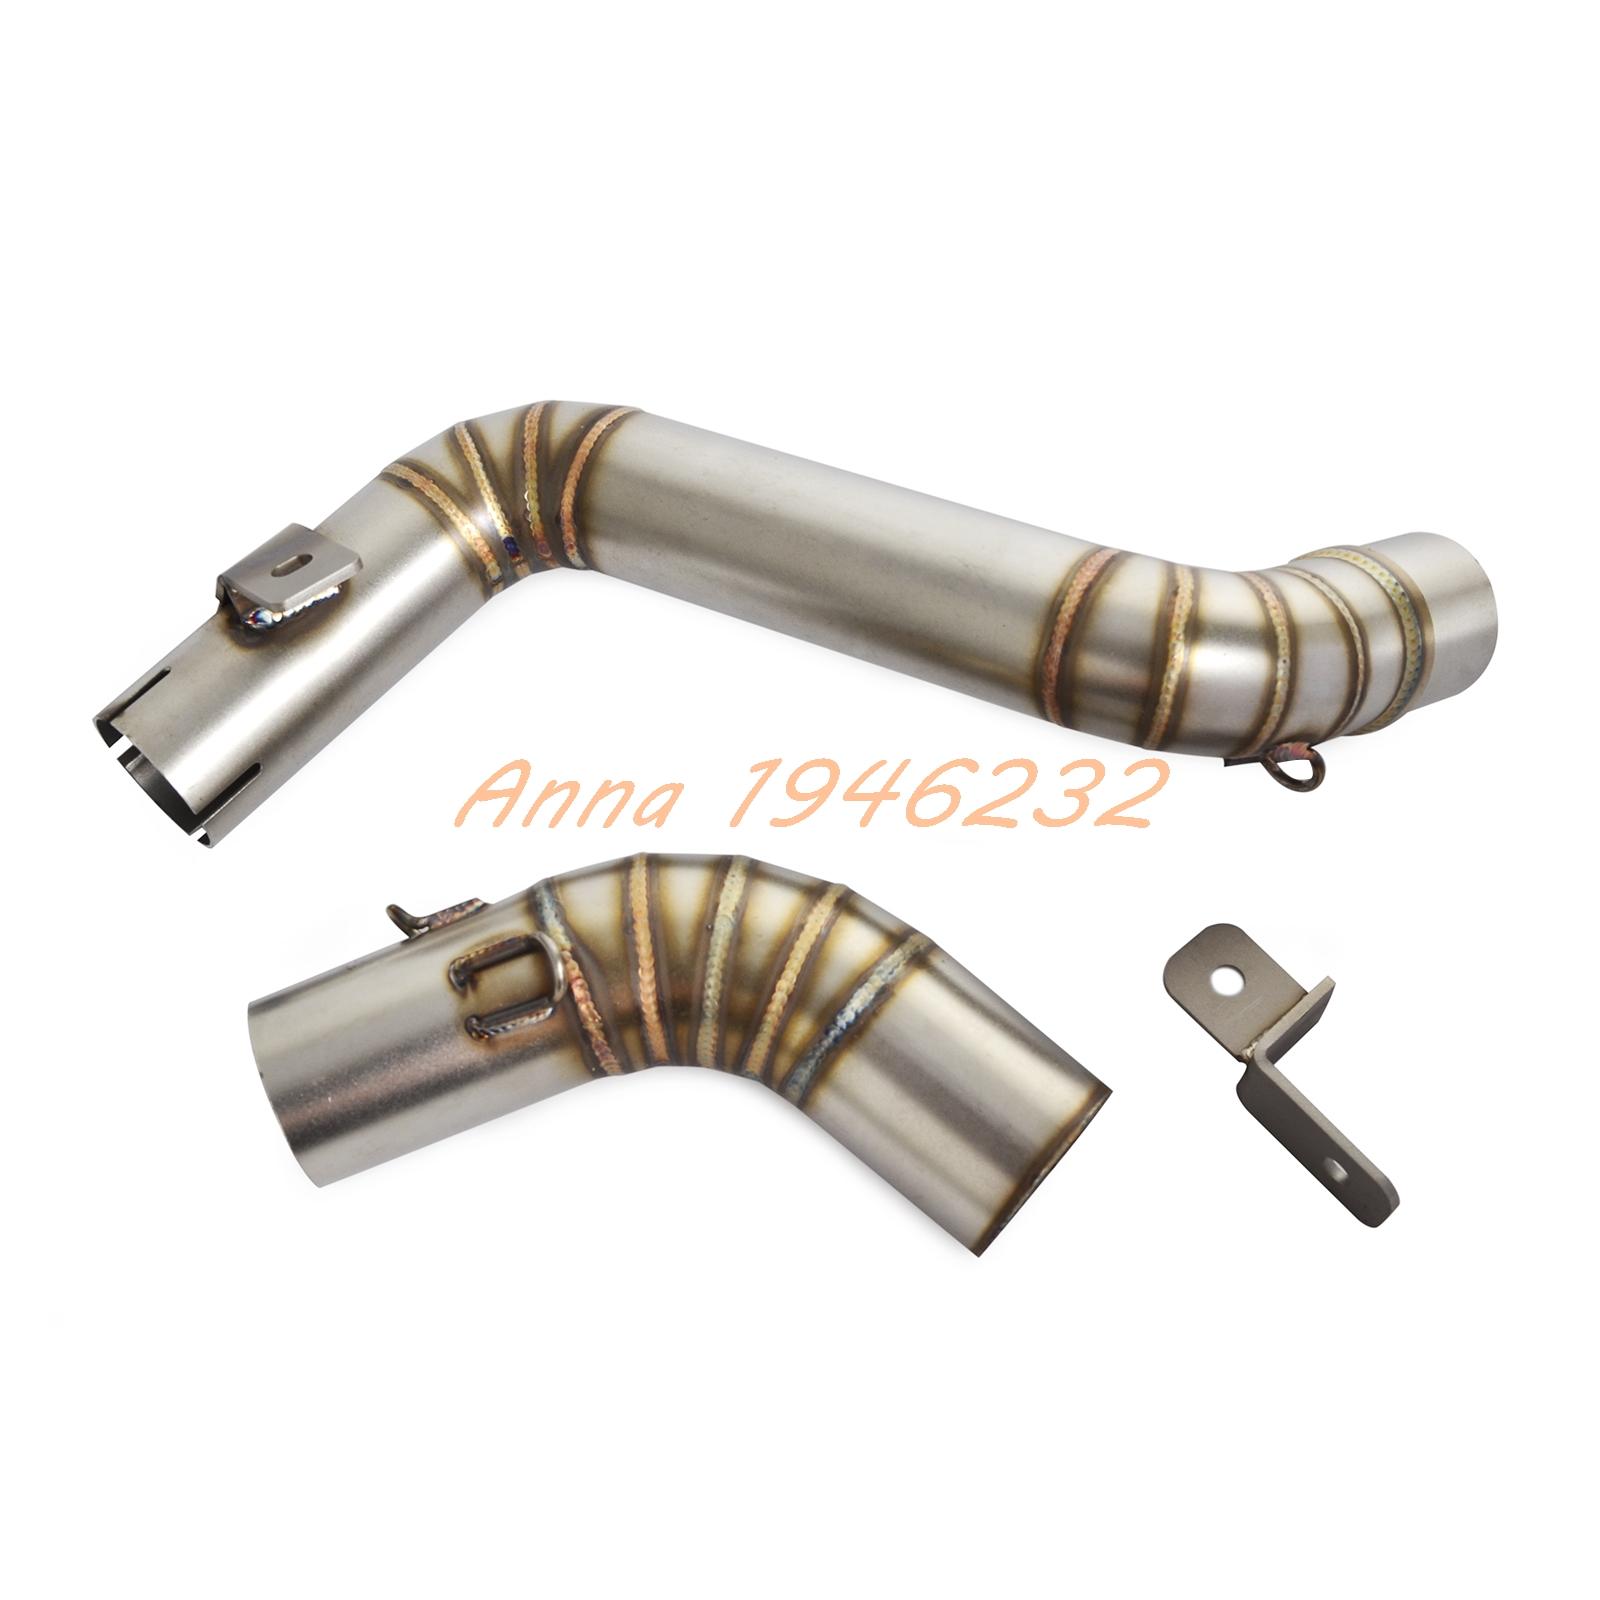 Motorcycle Stainless Slip On Exhaust Header Down Pipe & Exhaust Mid Pipe For KTM 125 200  Duke 2011-2015 Duke 390 2013-2016Motorcycle Stainless Slip On Exhaust Header Down Pipe & Exhaust Mid Pipe For KTM 125 200  Duke 2011-2015 Duke 390 2013-2016